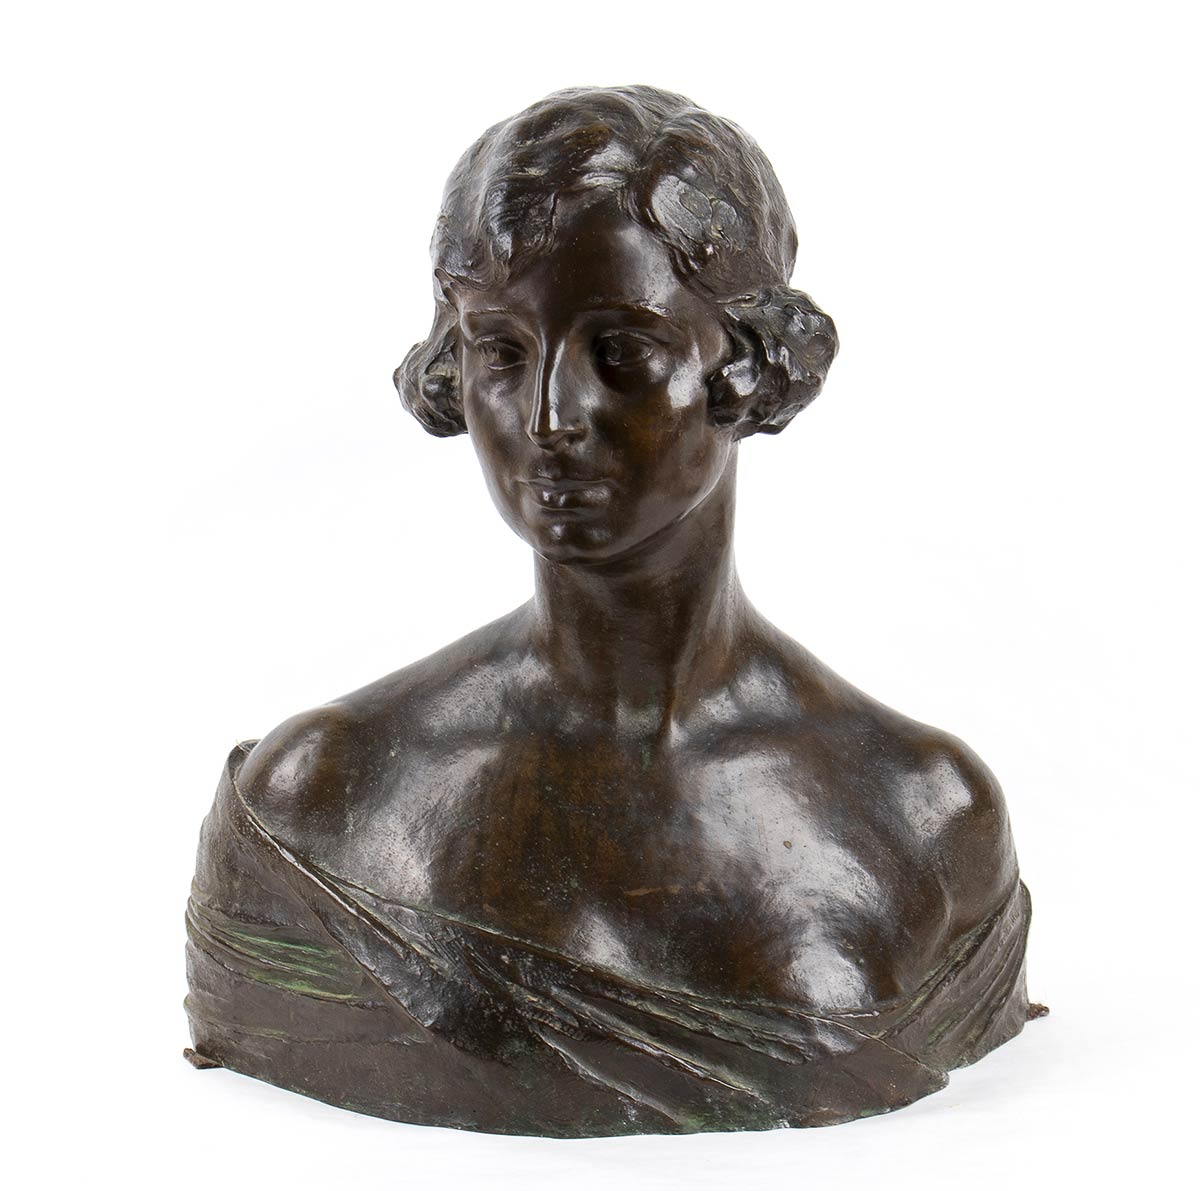 TORQUATO TAMAGNINI Perugia, 1886 - Roma, 1965-Bust of a young girl, Late 19th Century